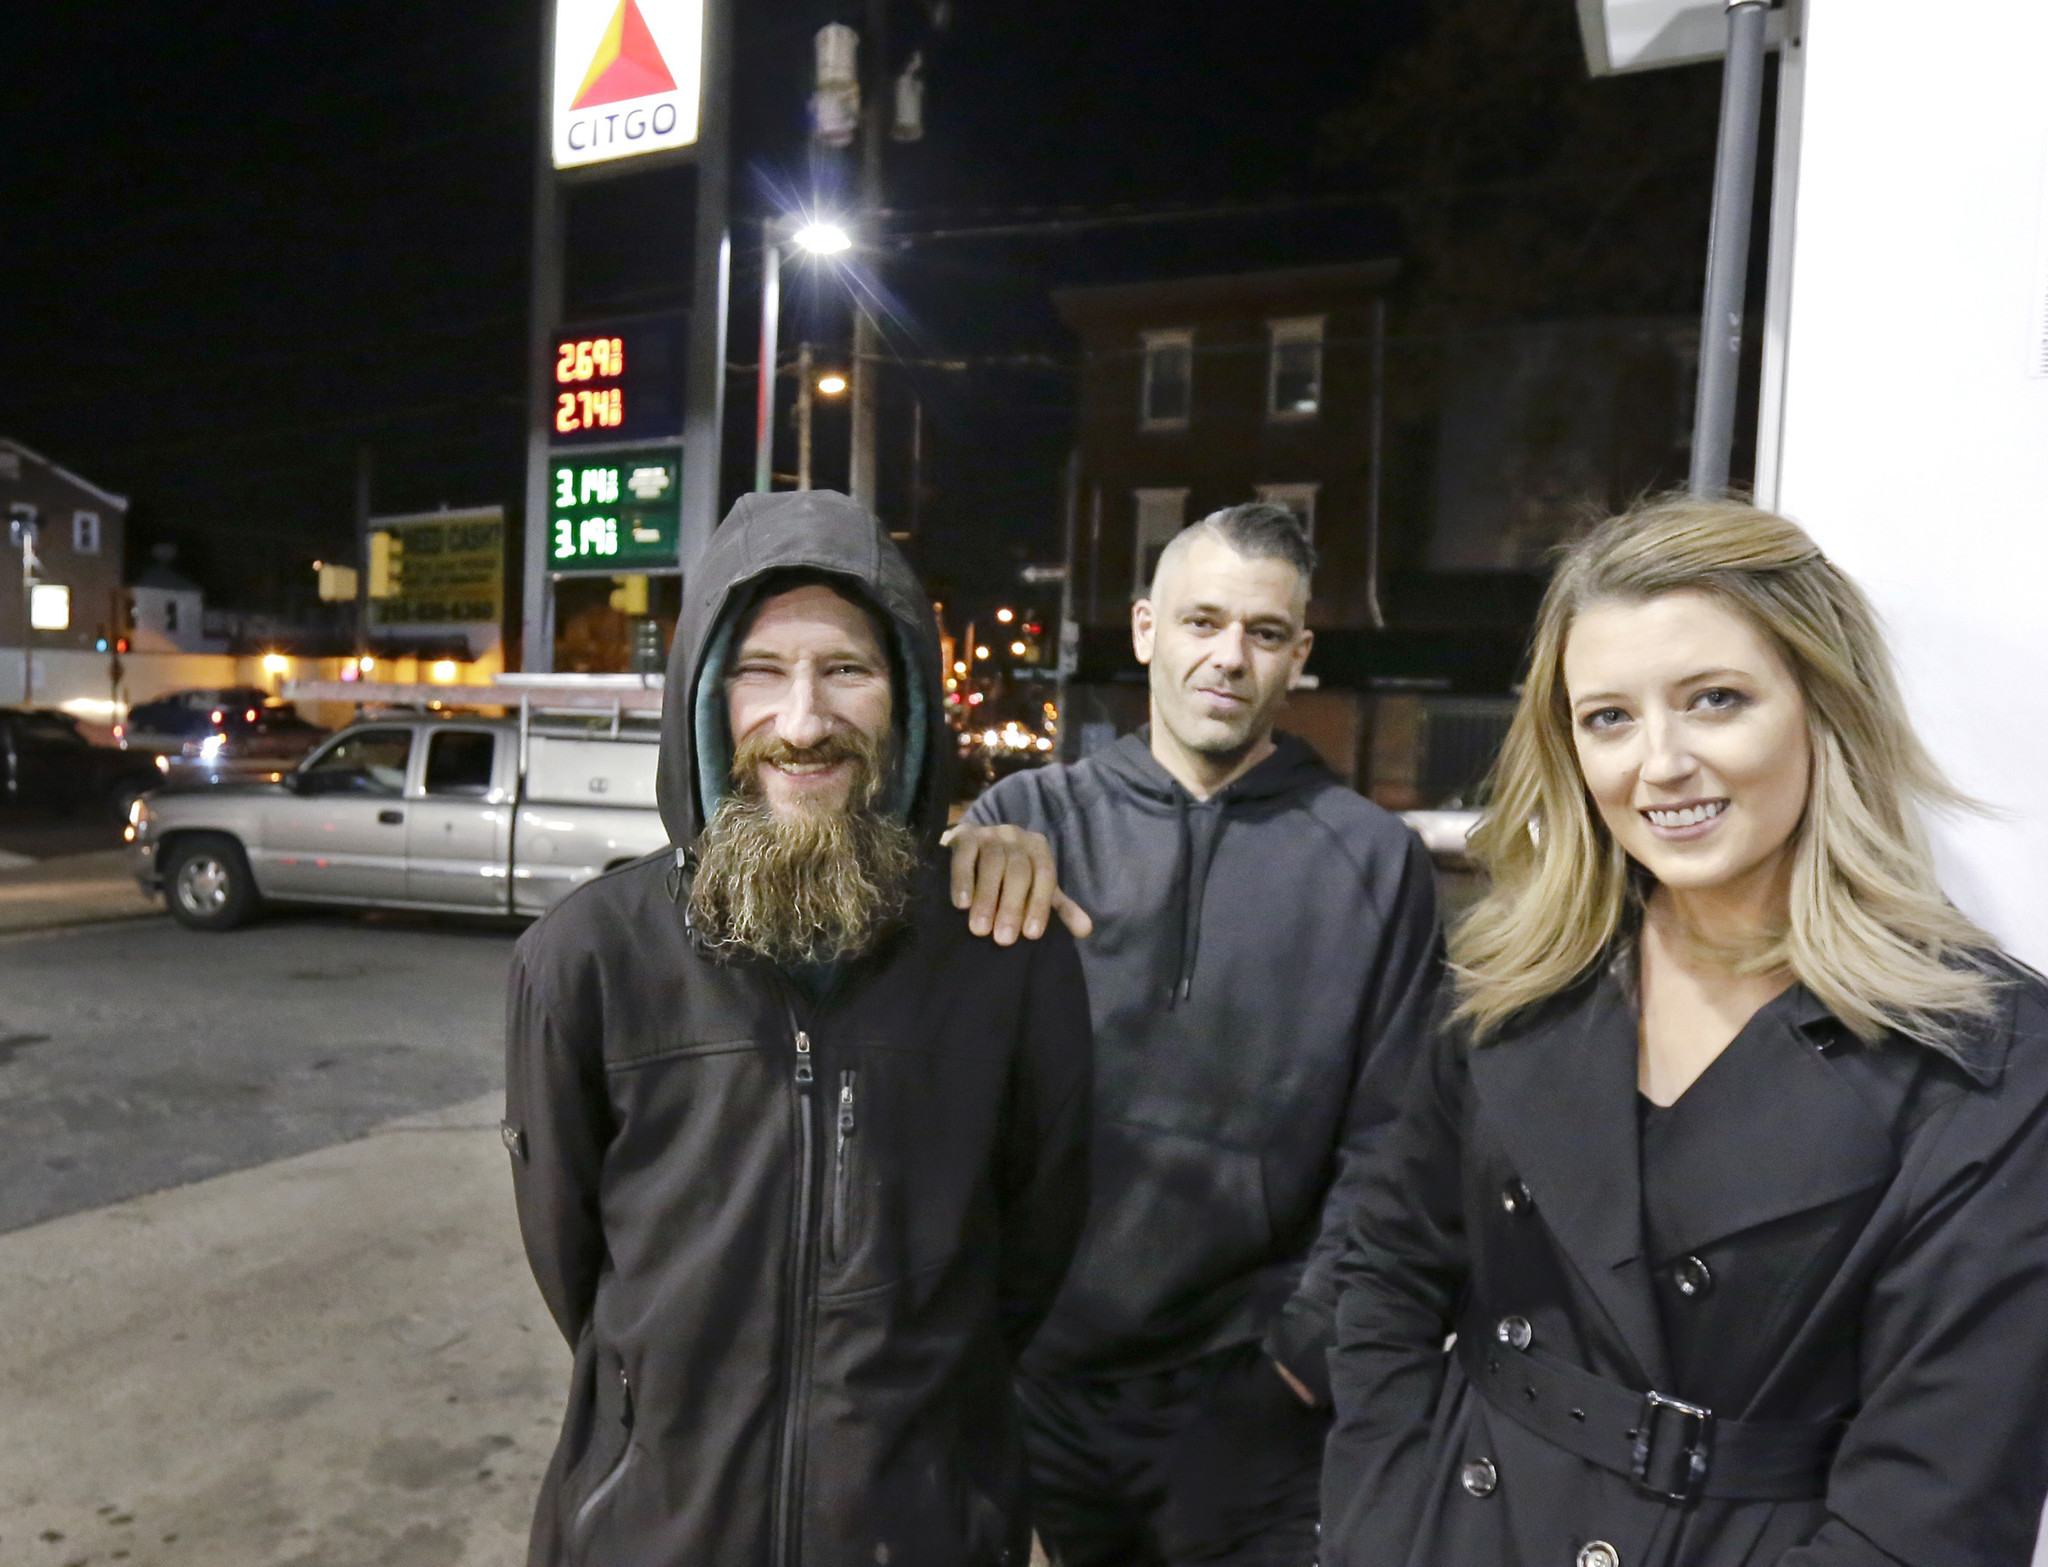 Woman raises thousands to help a homeless man who spent his last $20 to buy her gas